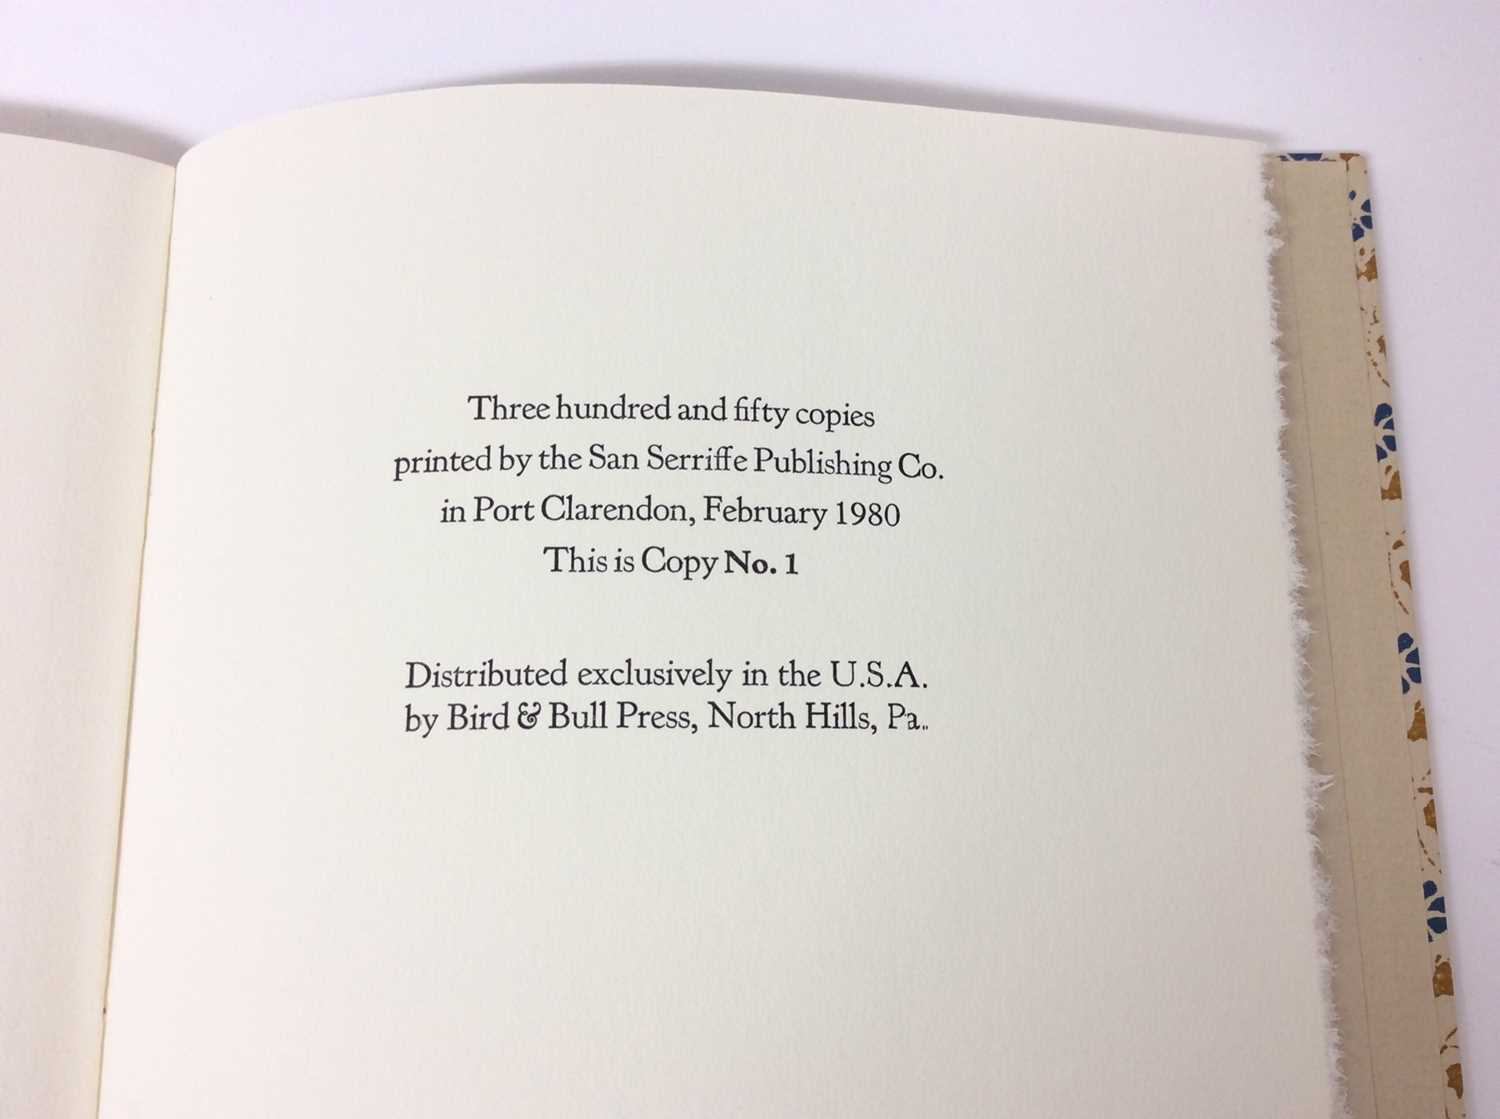 Elizabeth McClintoch - California Flora, The Book Vlub of California, 1995, two others - Image 10 of 16